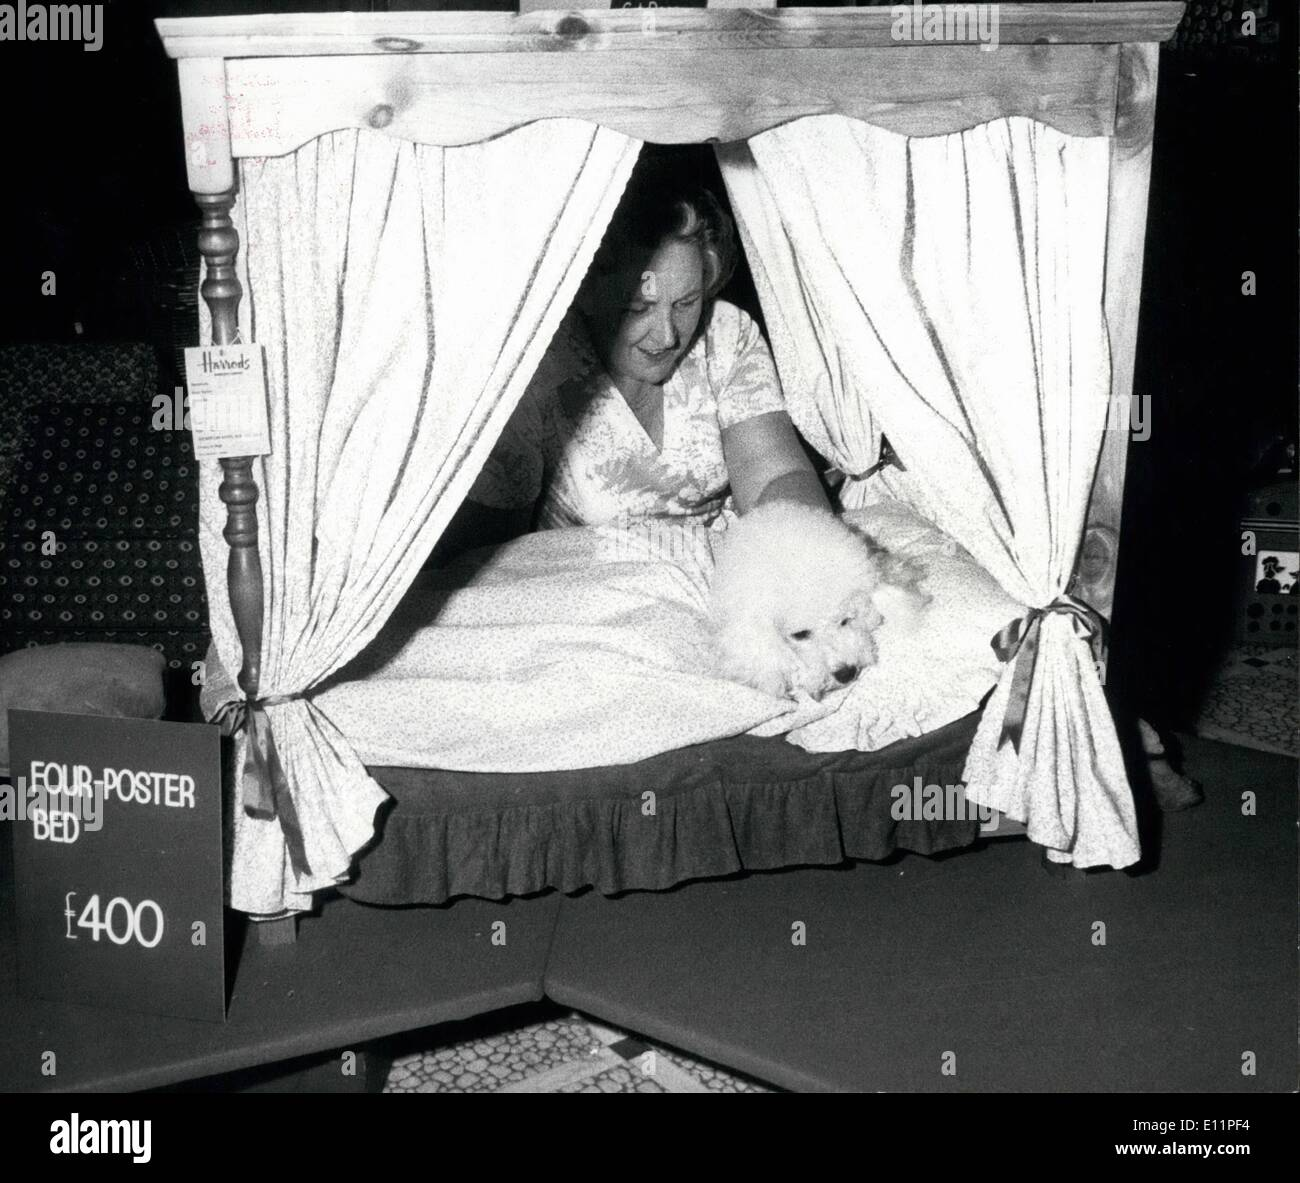 Aug. 08, 1979 - £400 Four-poster for pet dog: A dog's life is just a dream for ''Canto'' a prize Bichon Frise, when its owner Mrs. Pauline Block of Whitchurch, Hants, called in at Harrods Pet department to see if her pet dog would feel happy with such a special four-poster bed at £400, Canto did and make himself at home, so now he can sleep in luxury. Photo shows 'Canto' tries out a four-poster bed at Harrods Pet department for size. - Stock Image